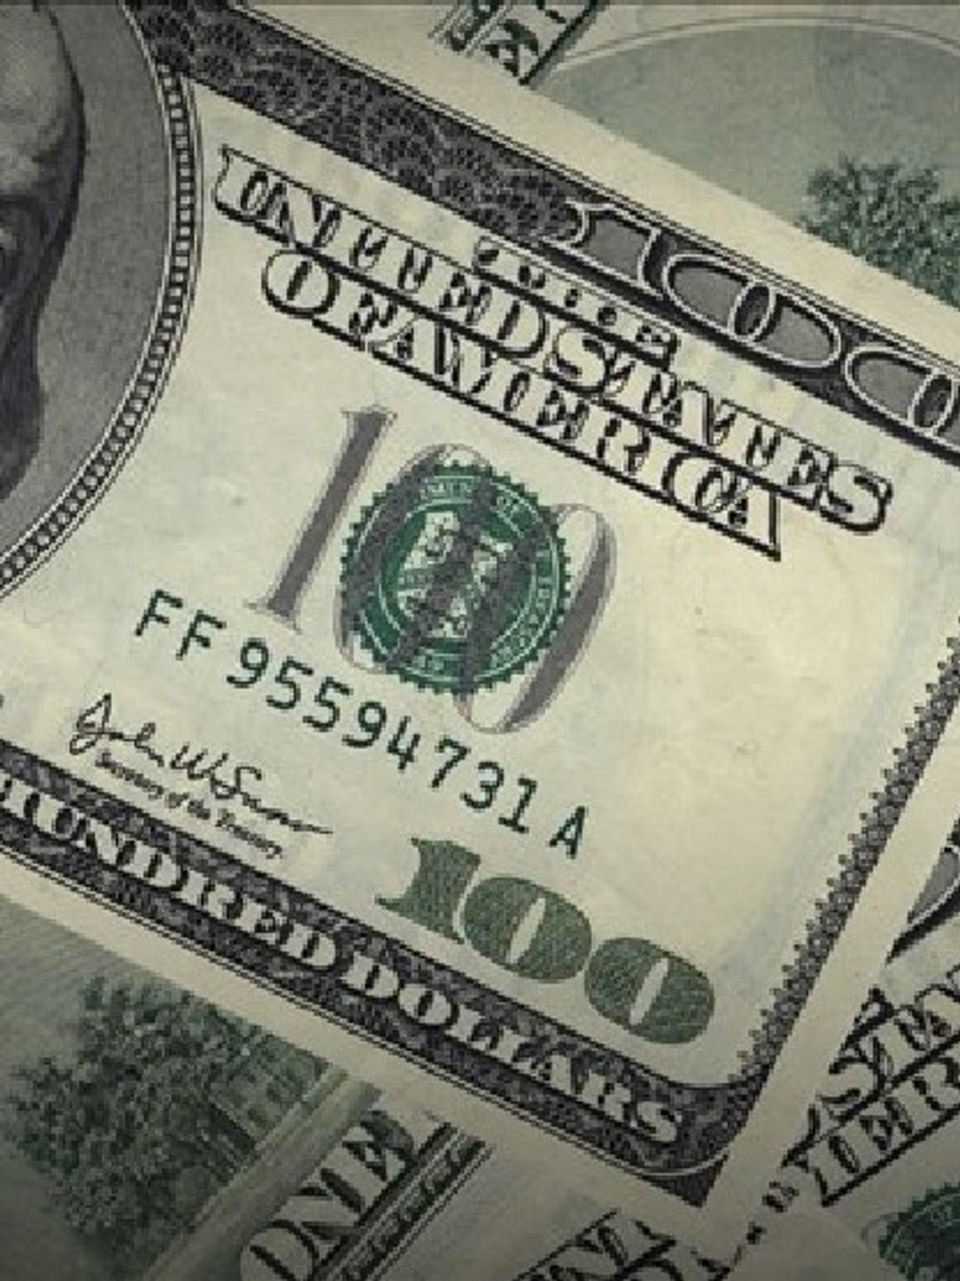 Getting Stimulus Checks Depends On Banking Information At The Irs Krcg Not to be outdone, pentagon employees got away with spending more than $100,000 at strip clubs and. getting stimulus checks depends on